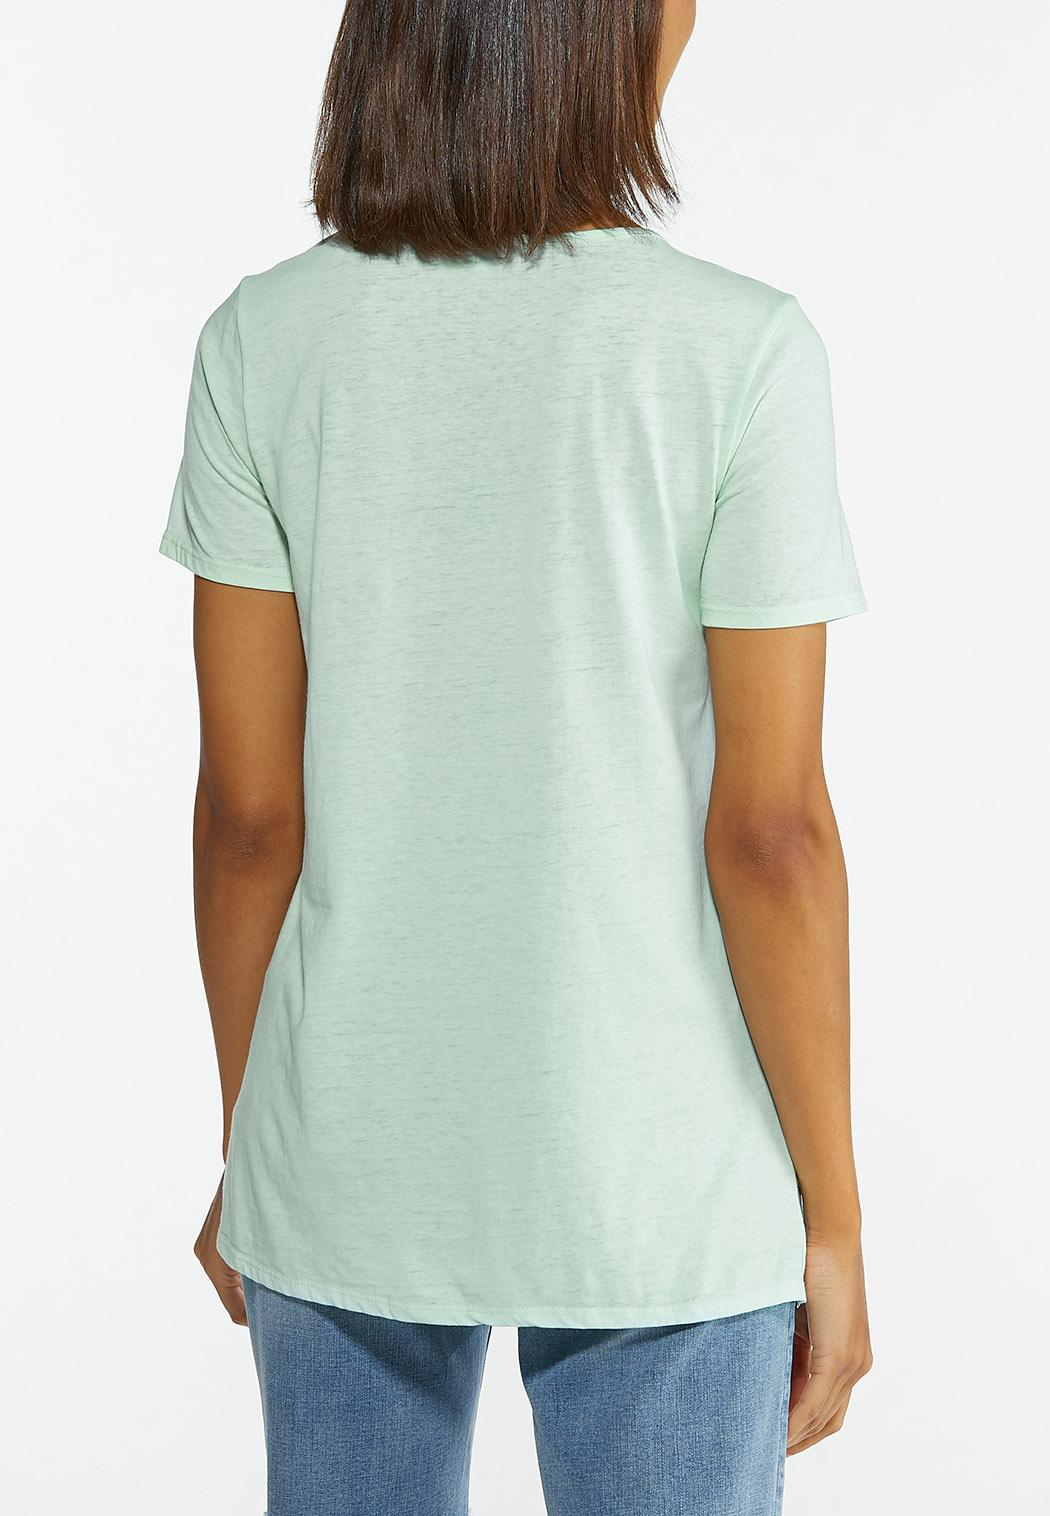 Plus Size You Are My Sunshine Tee (Item #44591047)